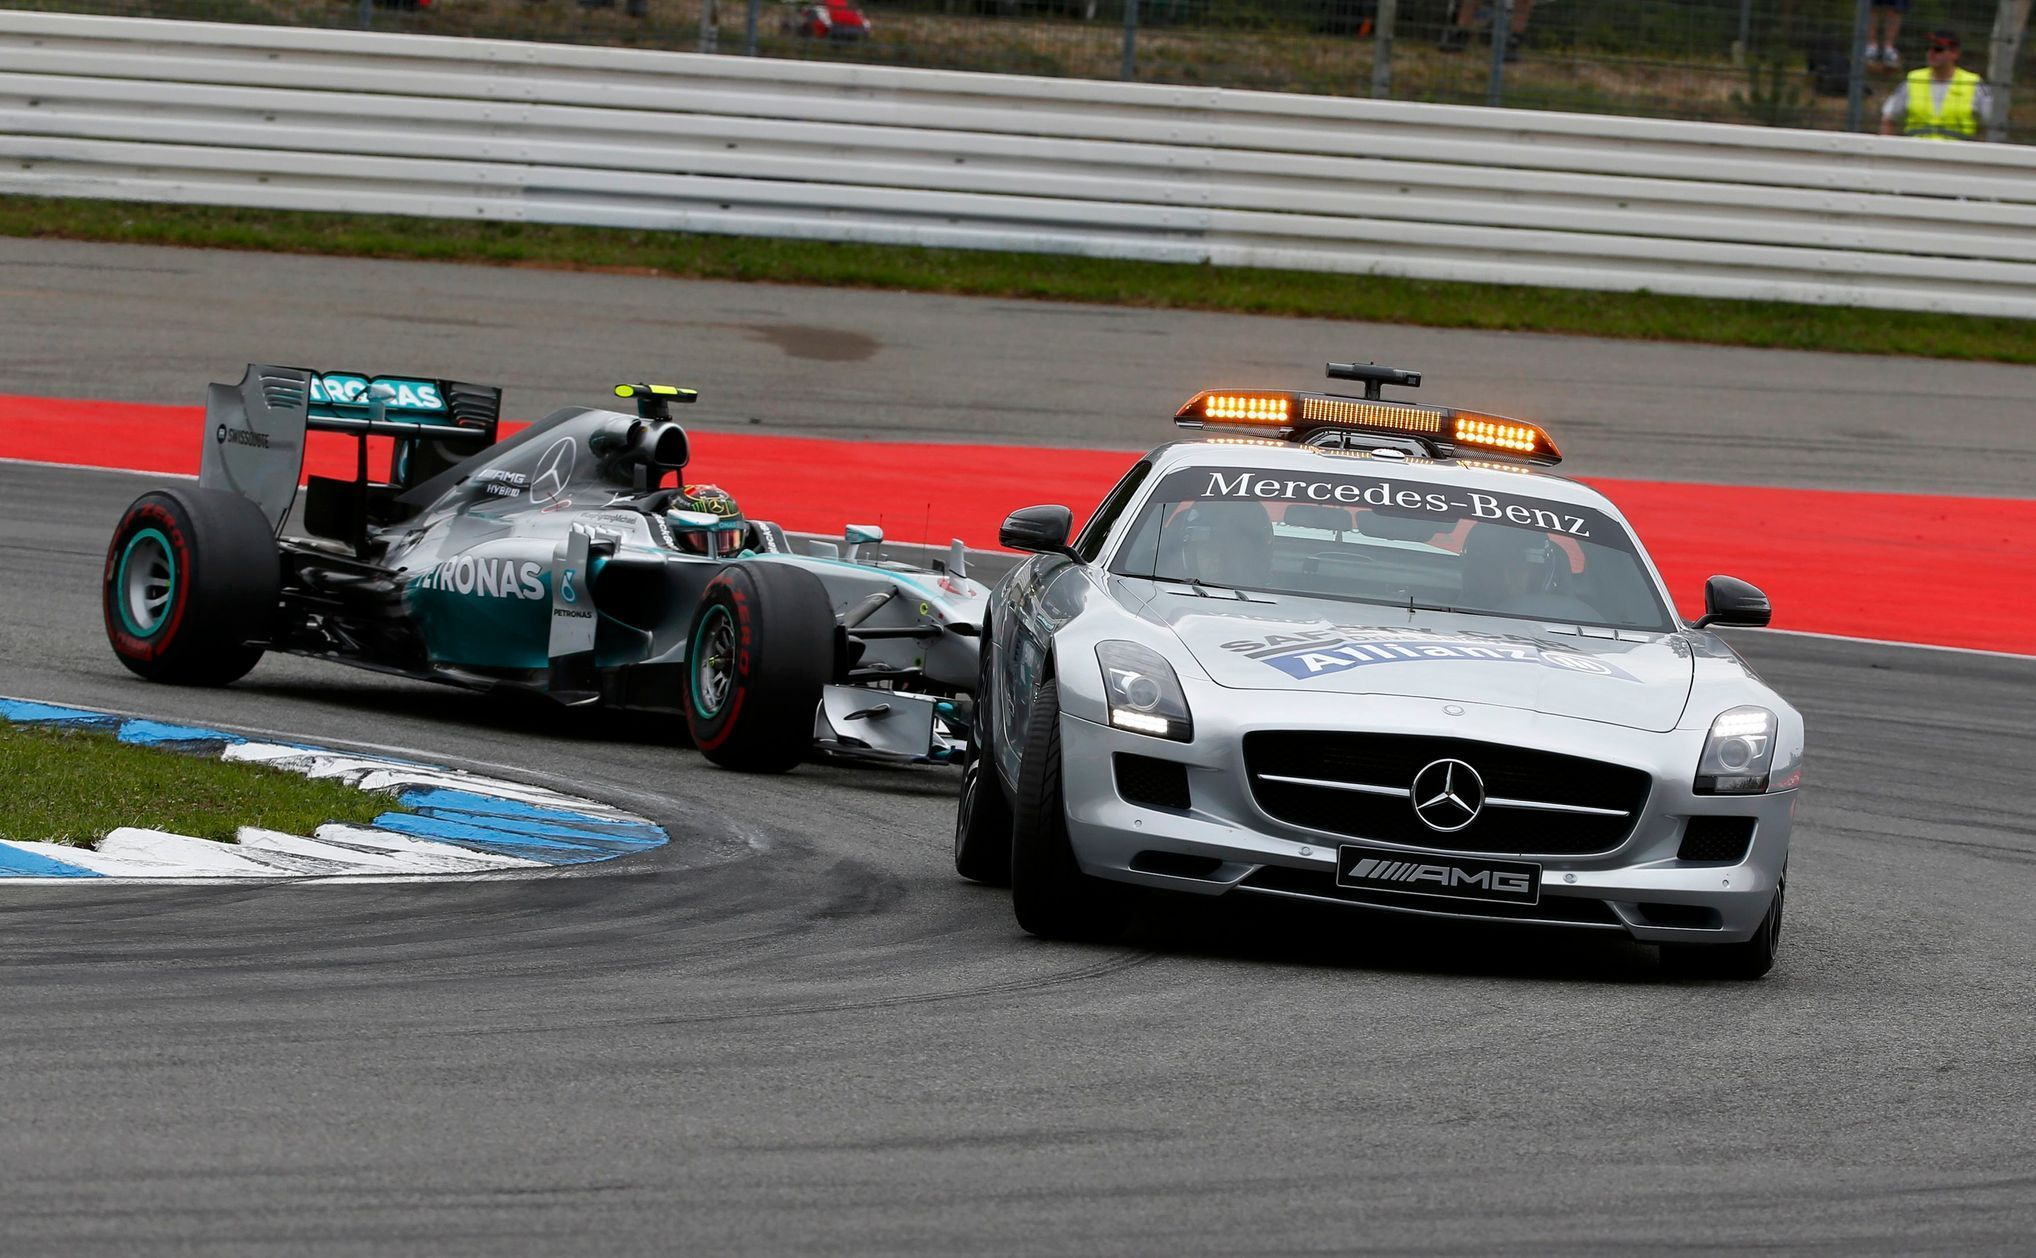 The safety car drives in front of Mercedes Formula One driver Nico Rosberg of Germany before German F1 Grand Prix at Hockenheim